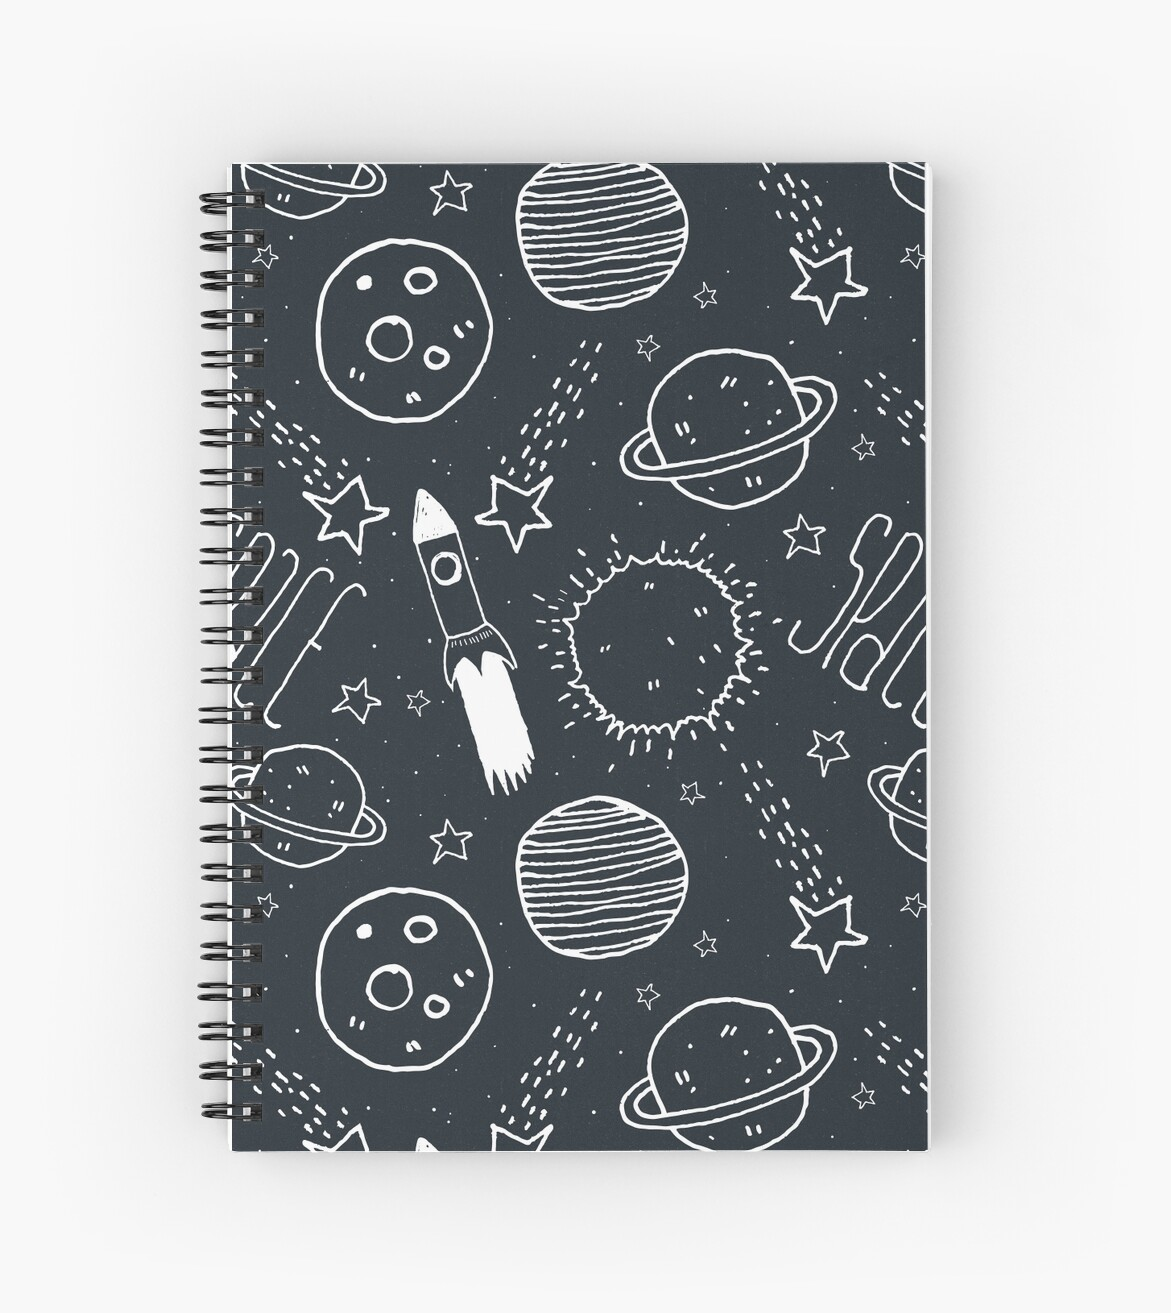 Quot Space Doodles Quot Spiral Notebook By Tracieandrews Redbubble